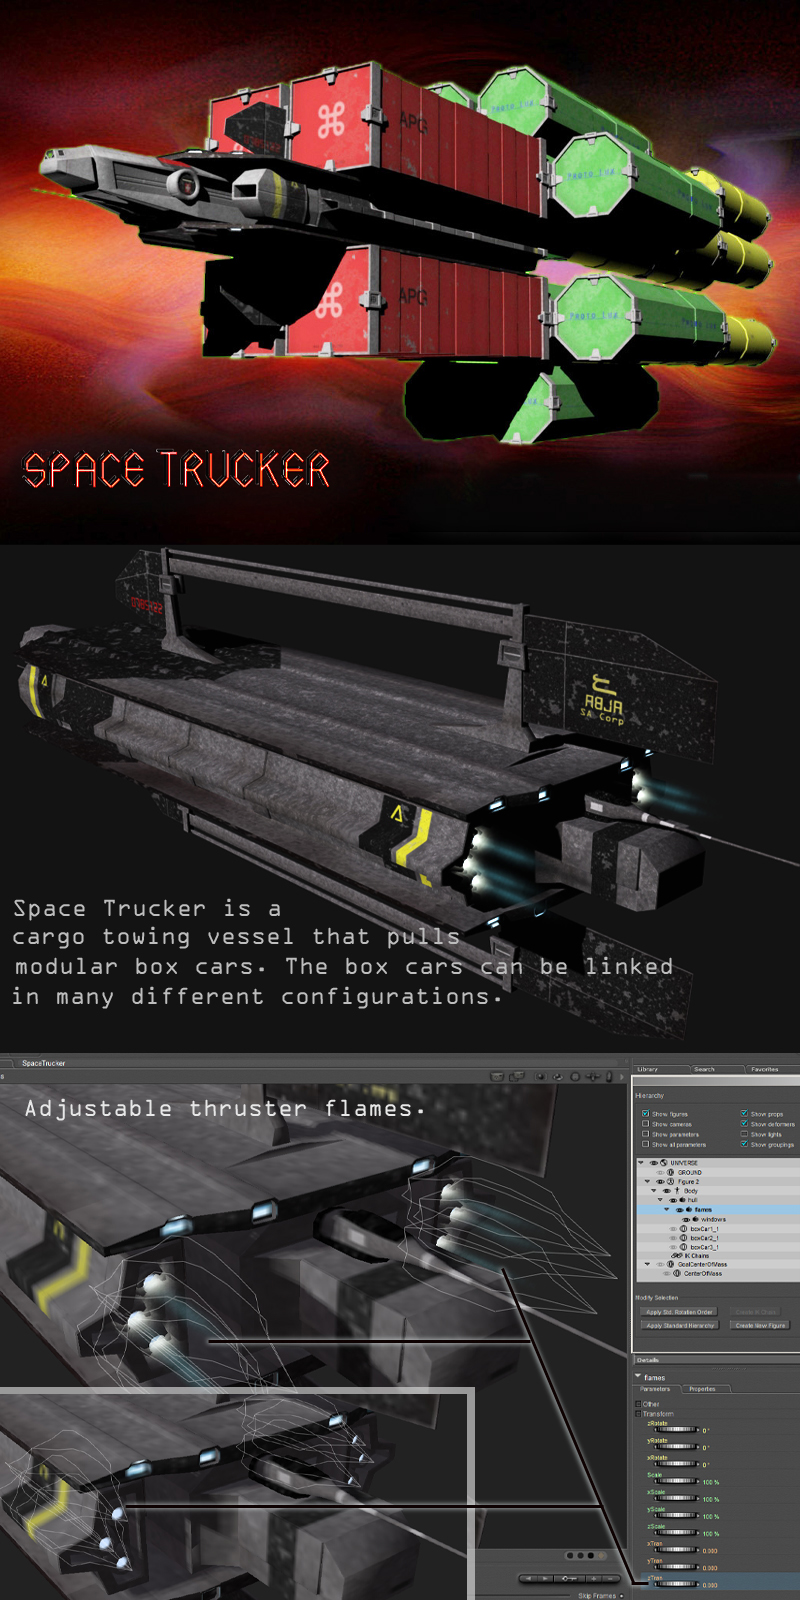 SpaceTrucker